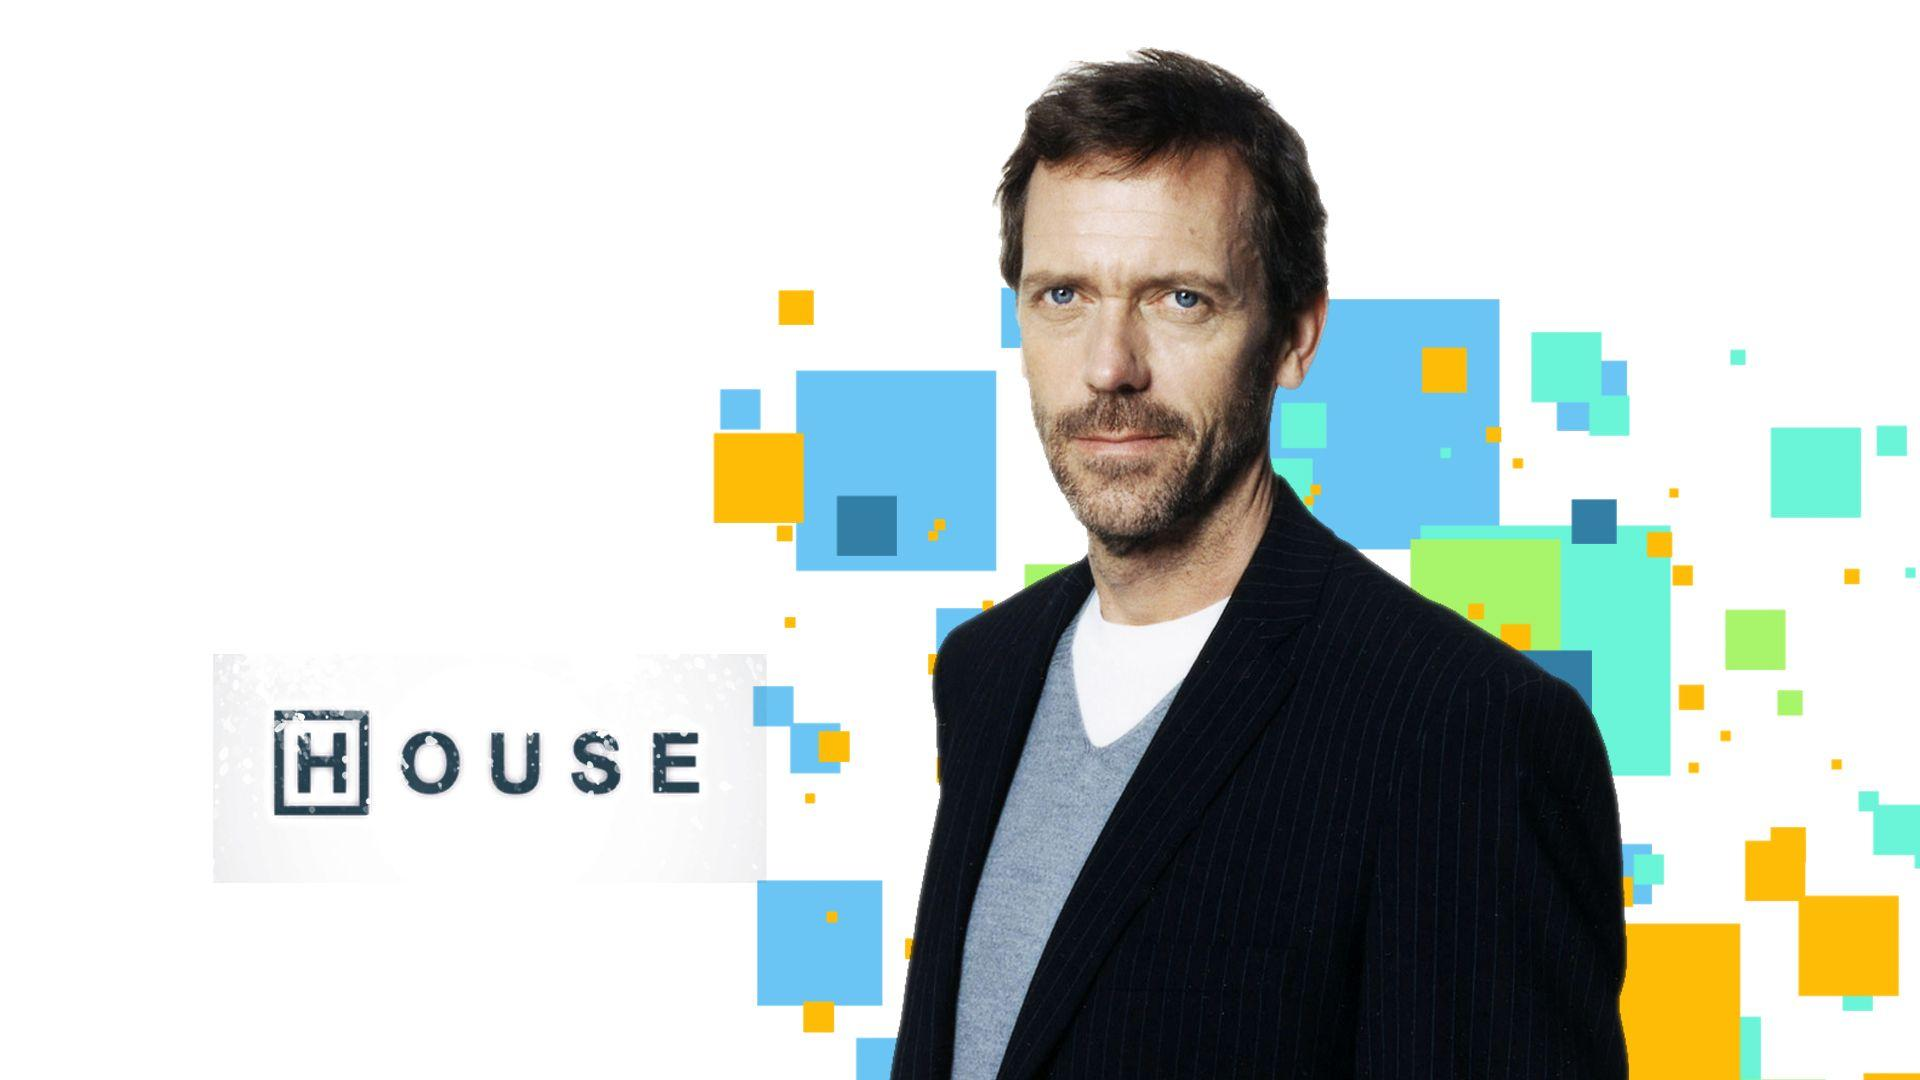 House - House M.D. Wallpaper (31246455) - Fanpop